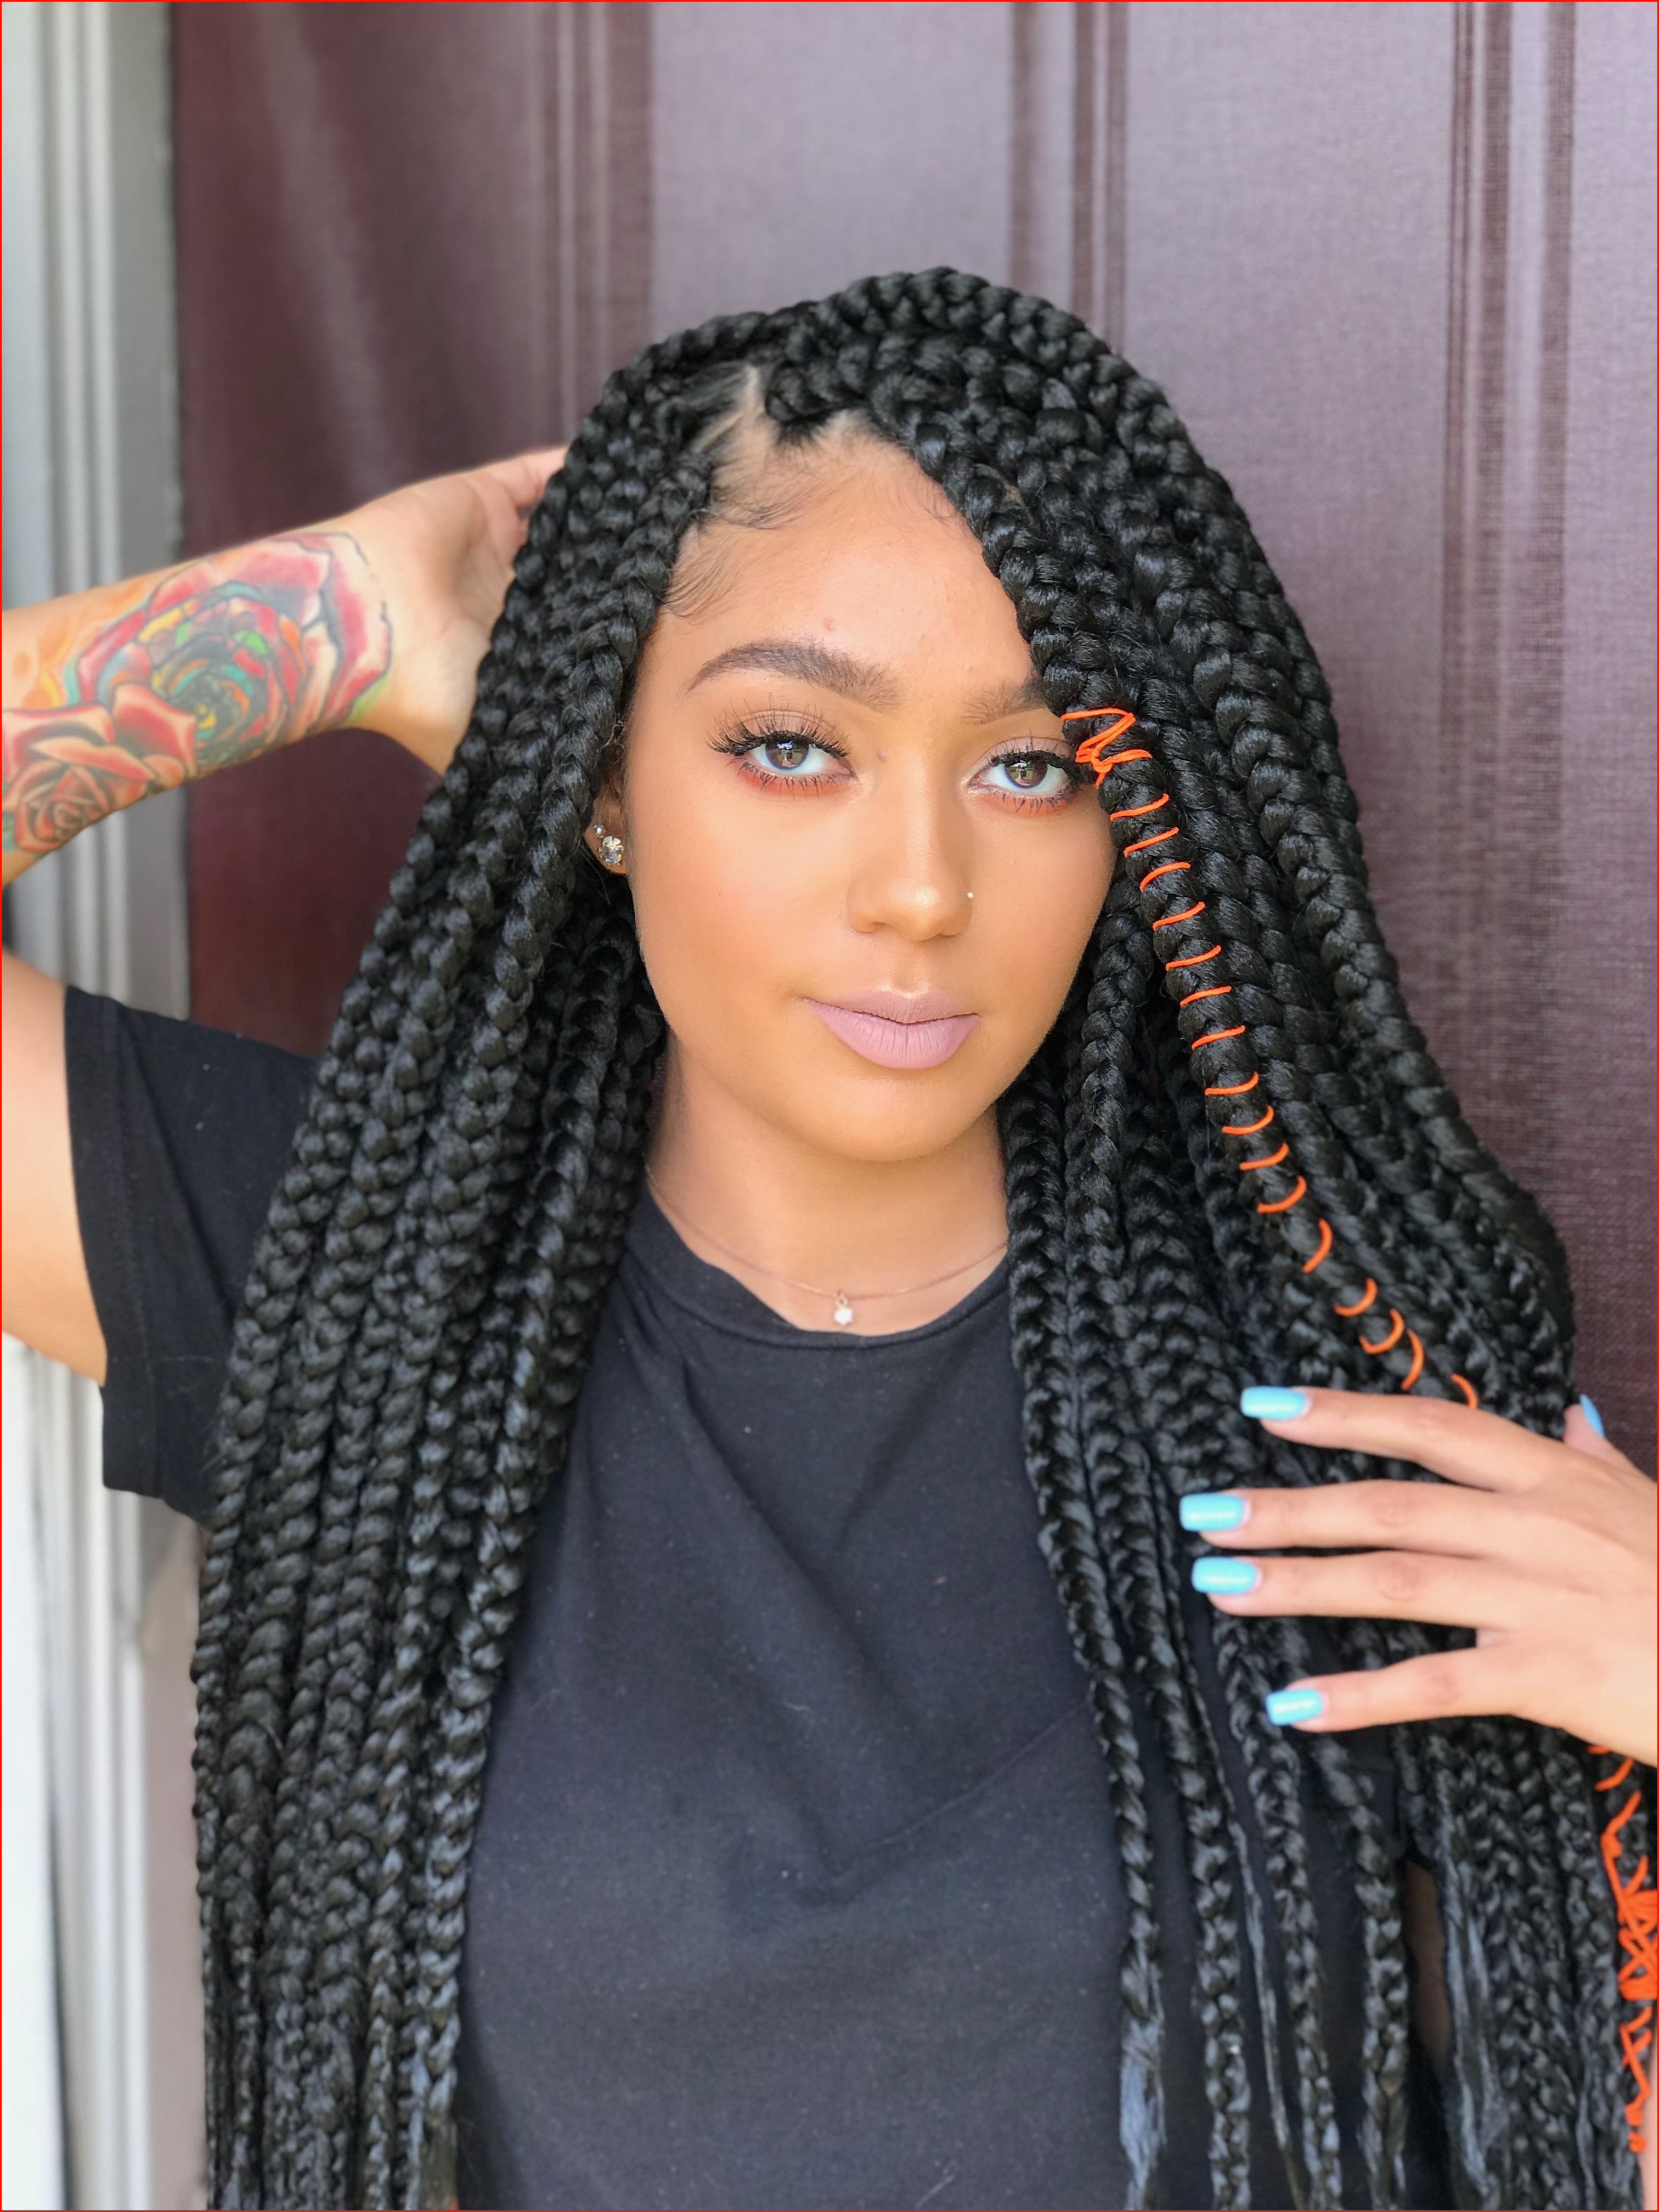 Braided Hairstyles Archives – Popshopdjs Within Current Braided Braids Hairstyles (View 7 of 20)